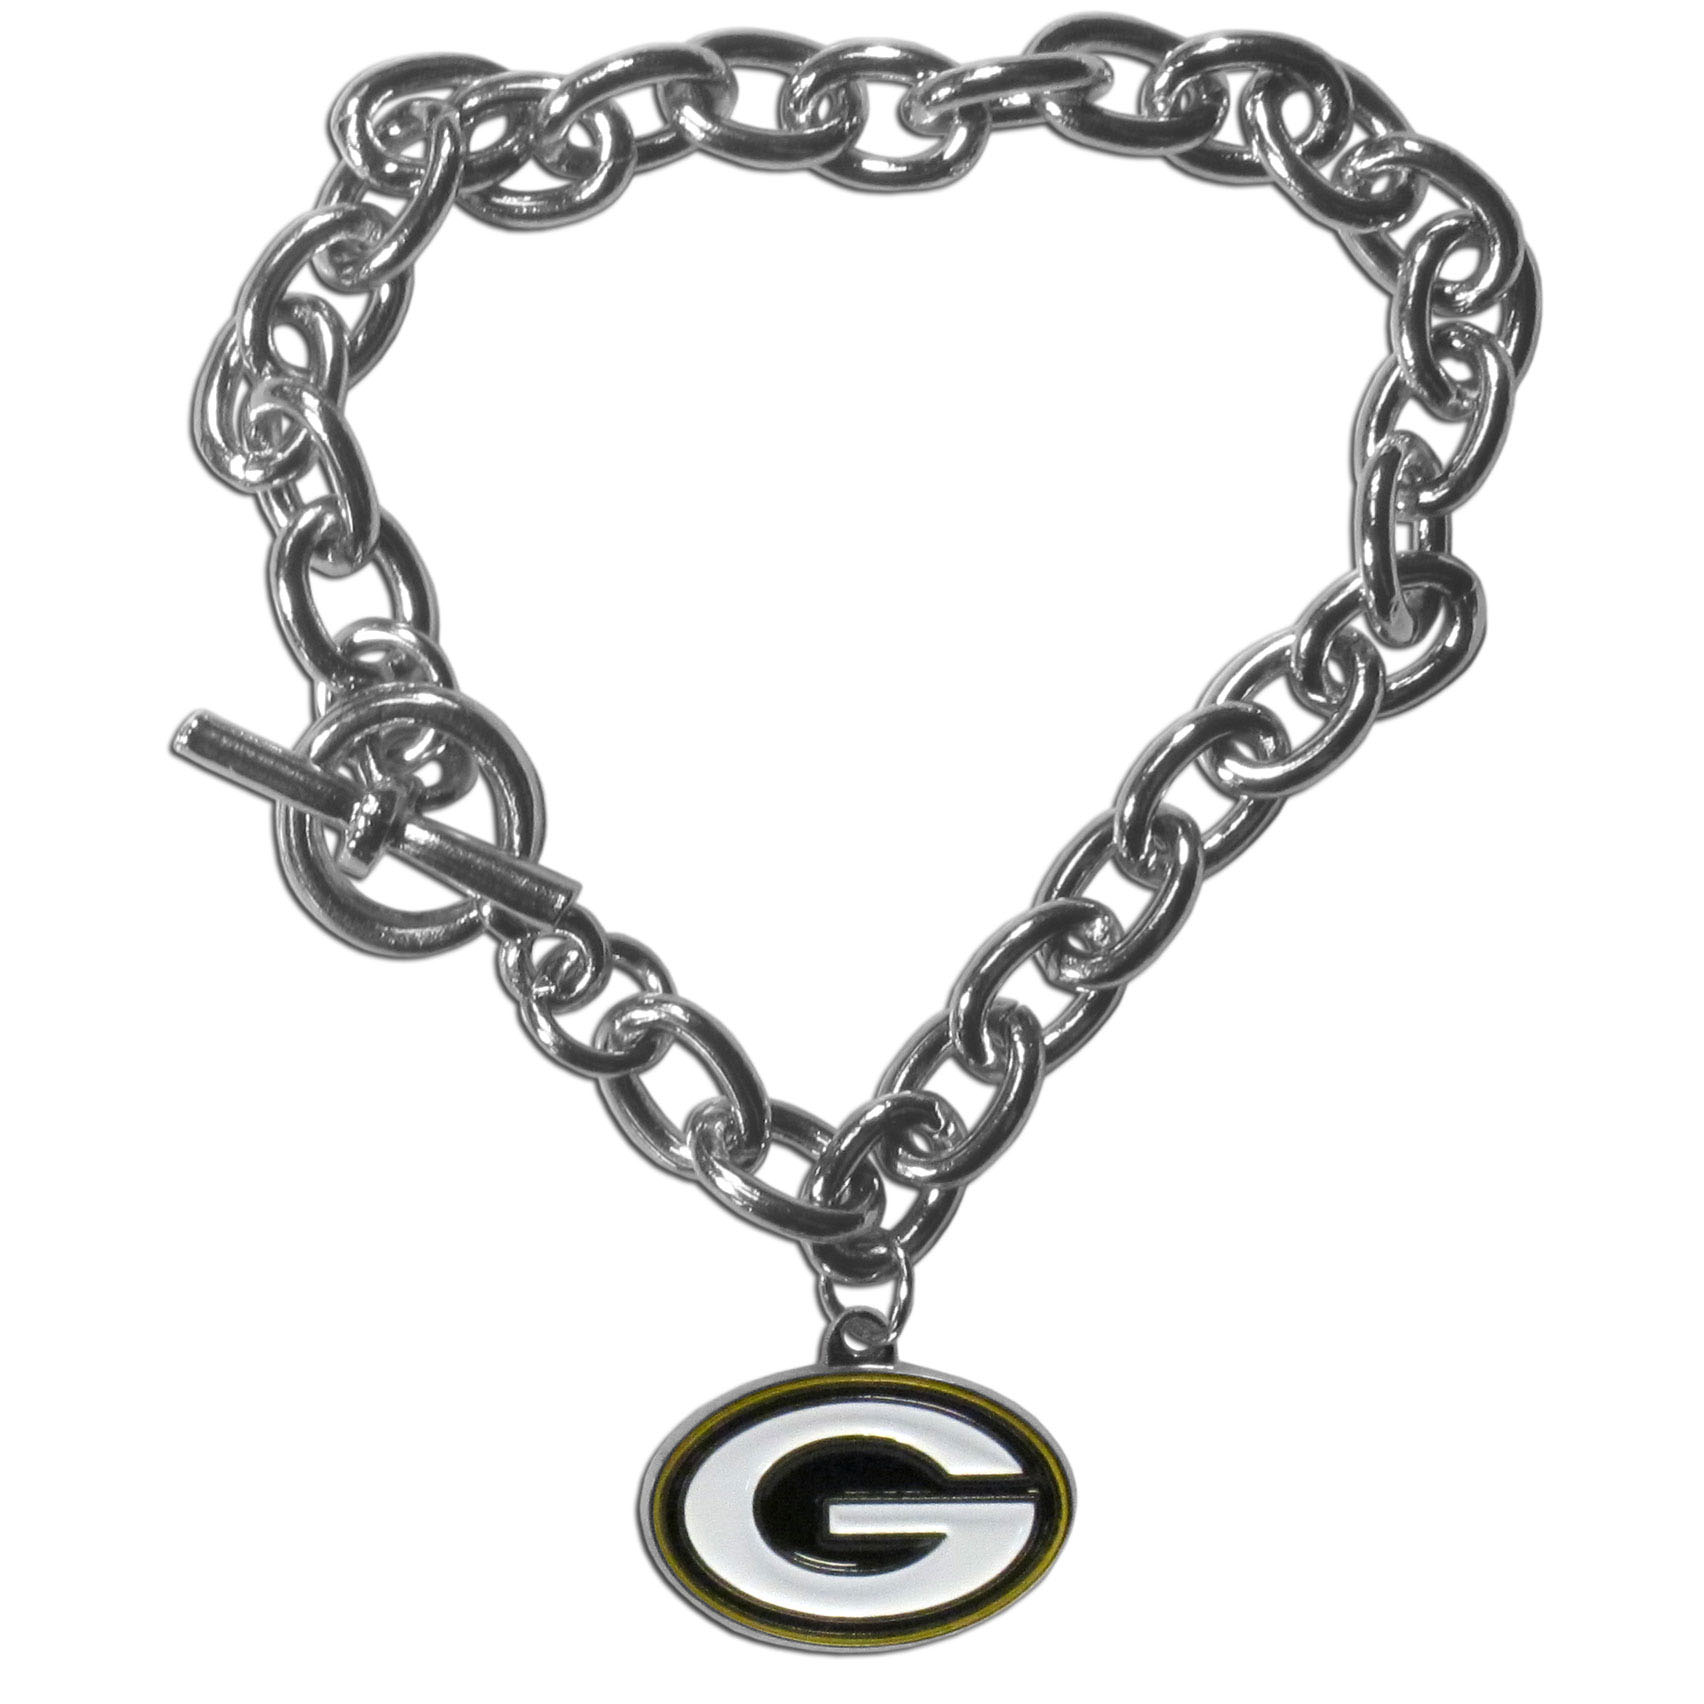 Green Bay Packers Charm Chain Bracelet - Our classic single charm bracelet is a great way to show off your team pride! The 7.5 inch large link chain features a high polish Green Bay Packers charm and features a toggle clasp which makes it super easy to take on and off.